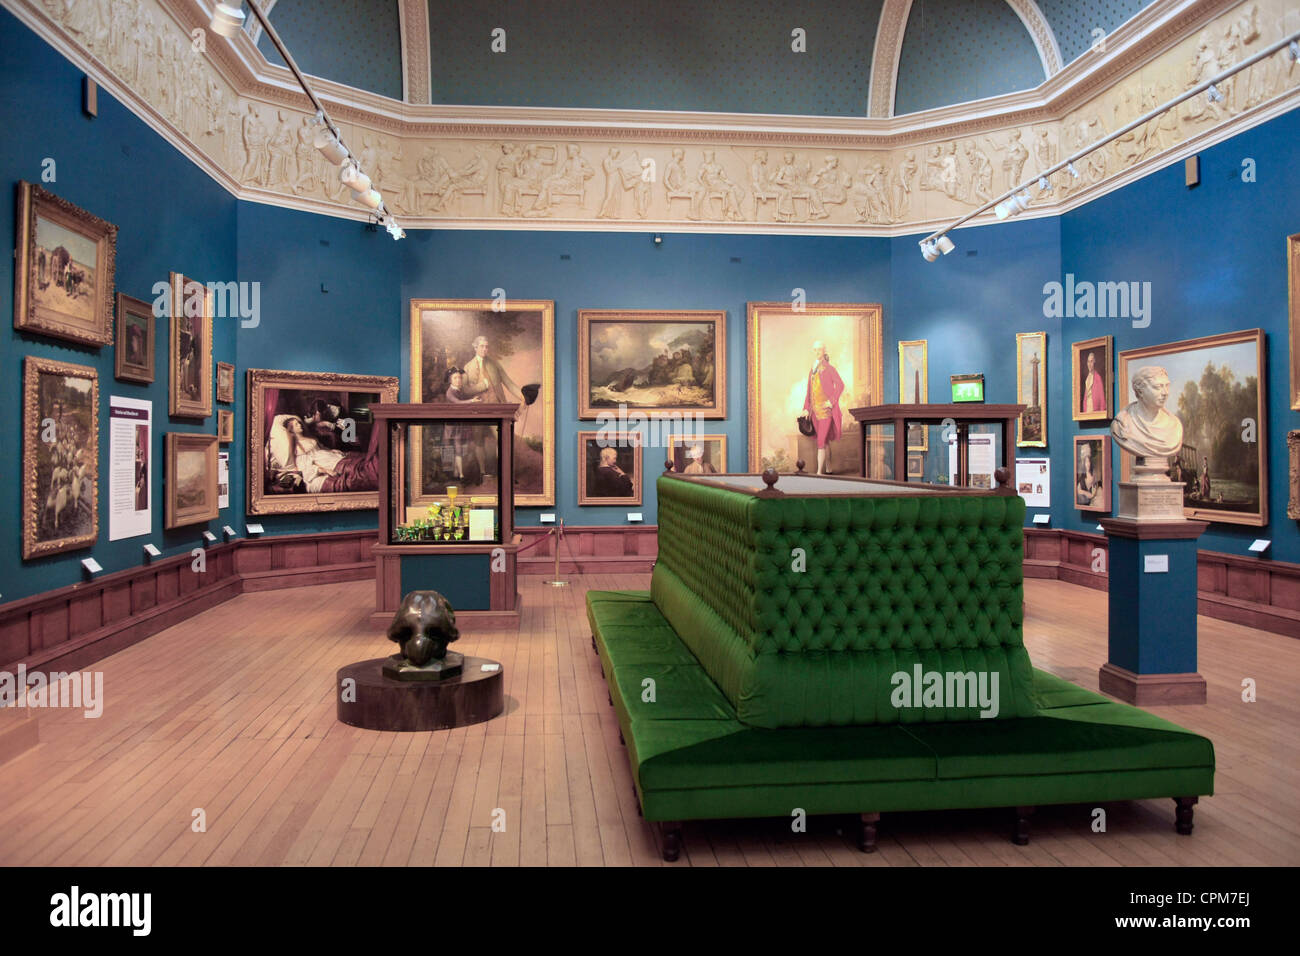 The Victoria Art Gallery collection in Bath England - Stock Image